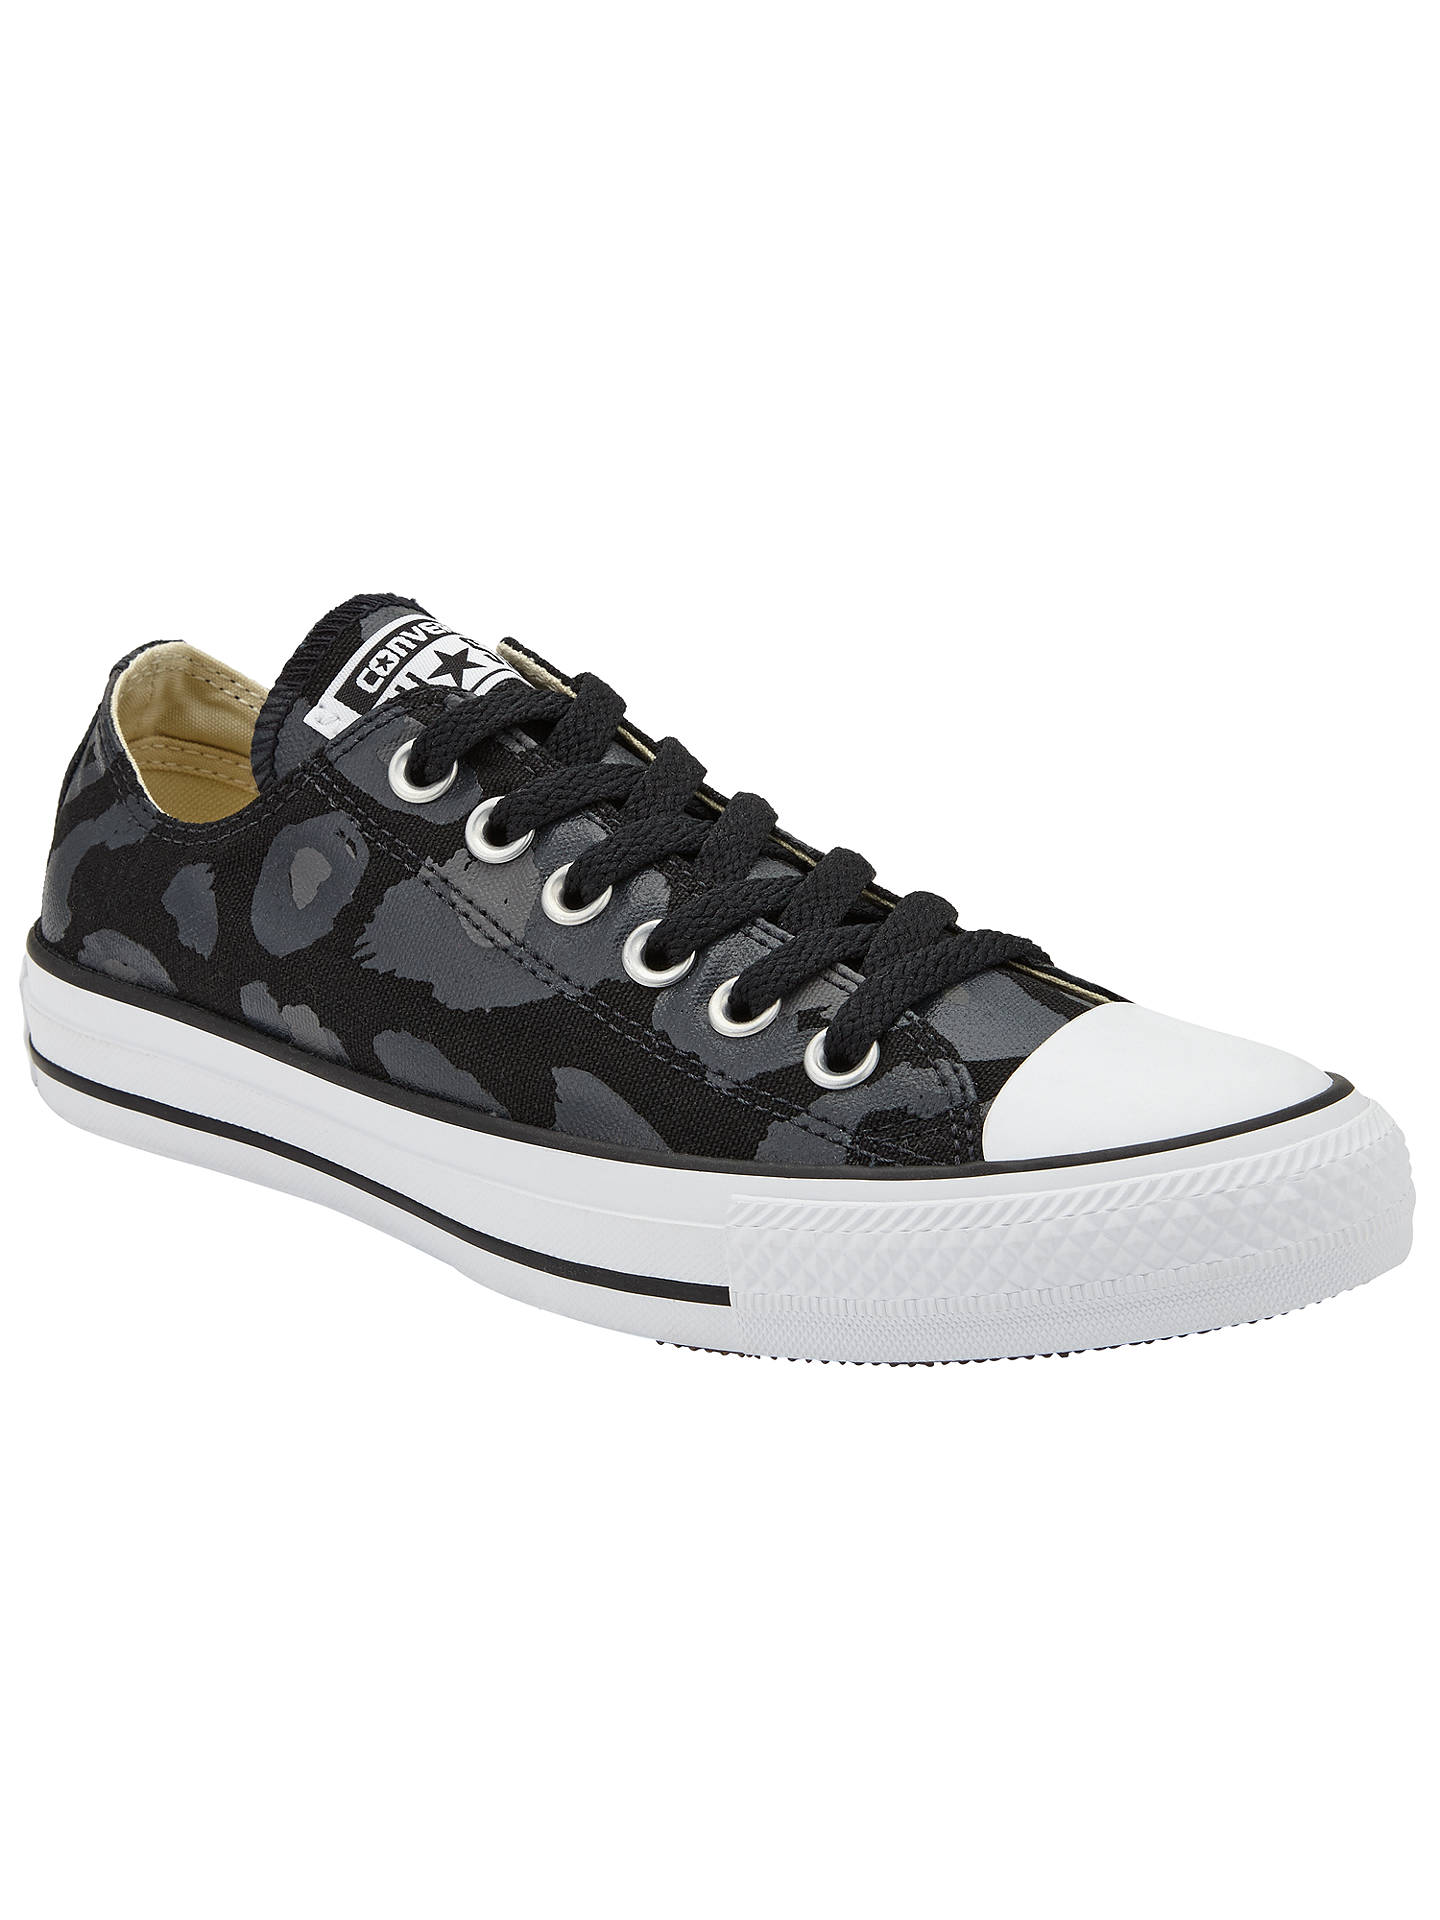 59c10e58f0fa Converse Chuck Taylor All Star Leopard Print Ox Trainers at John ...